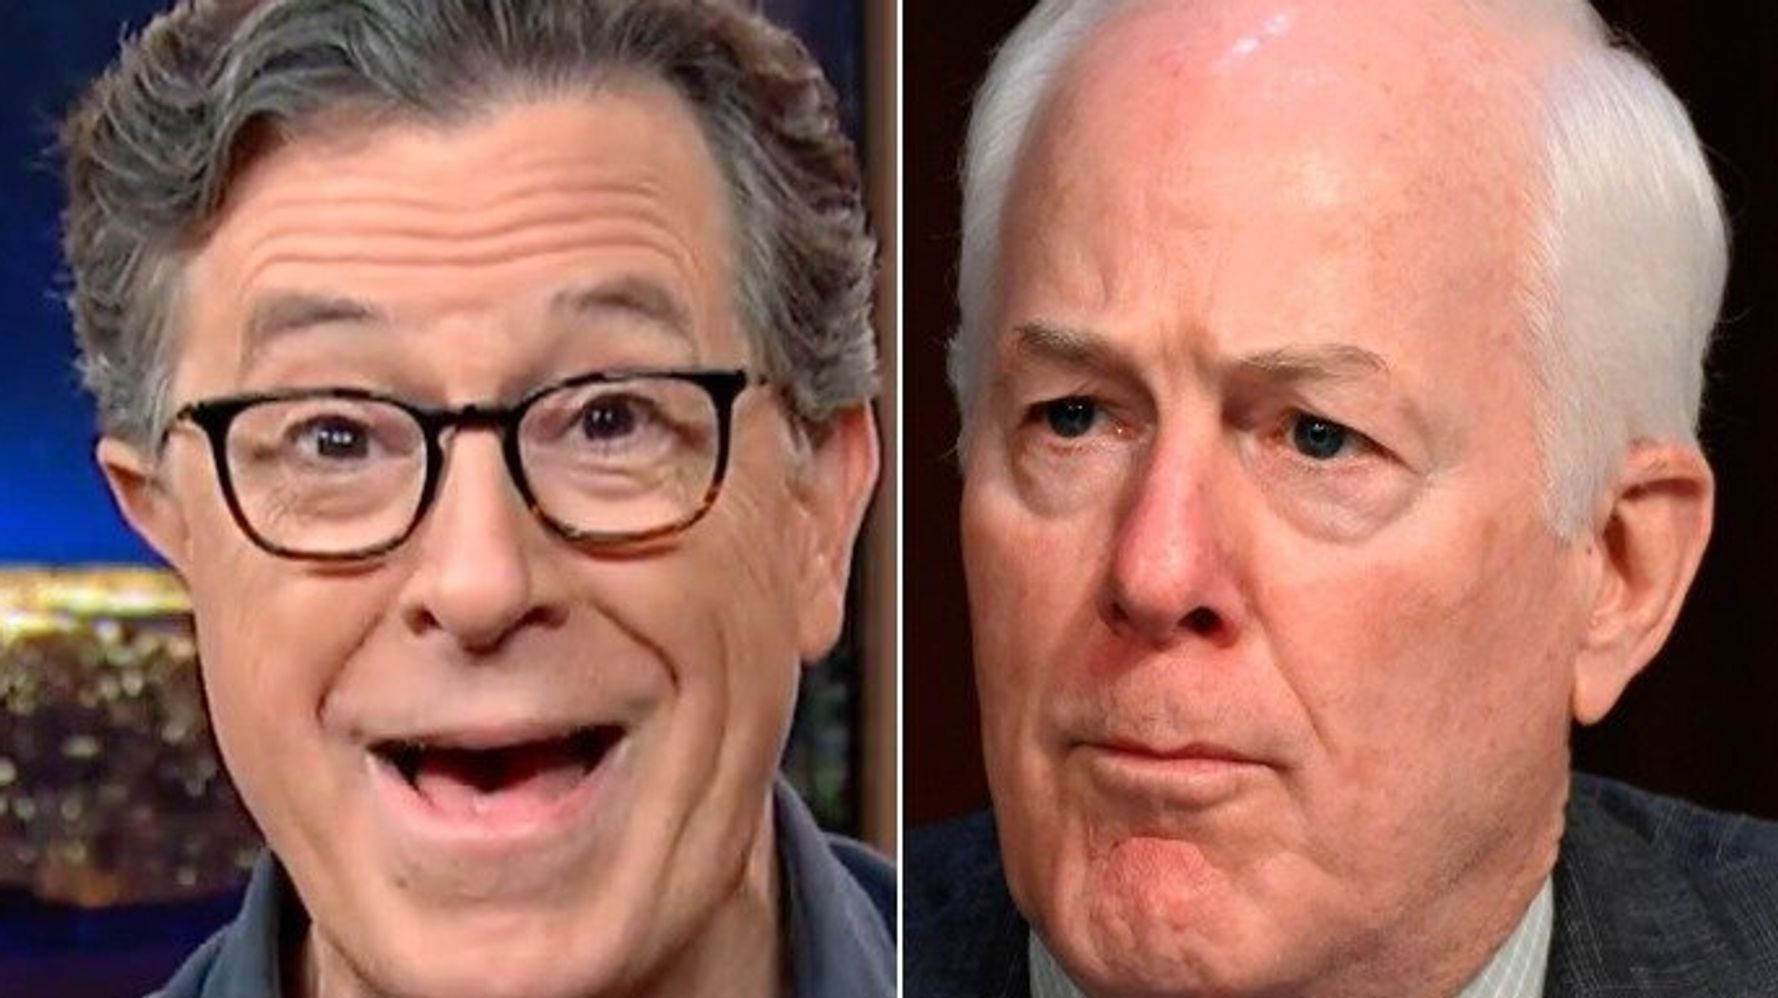 Stephen Colbert Taunts GOP Senator With 'Tiny Little Testicles' Over Trump Comments